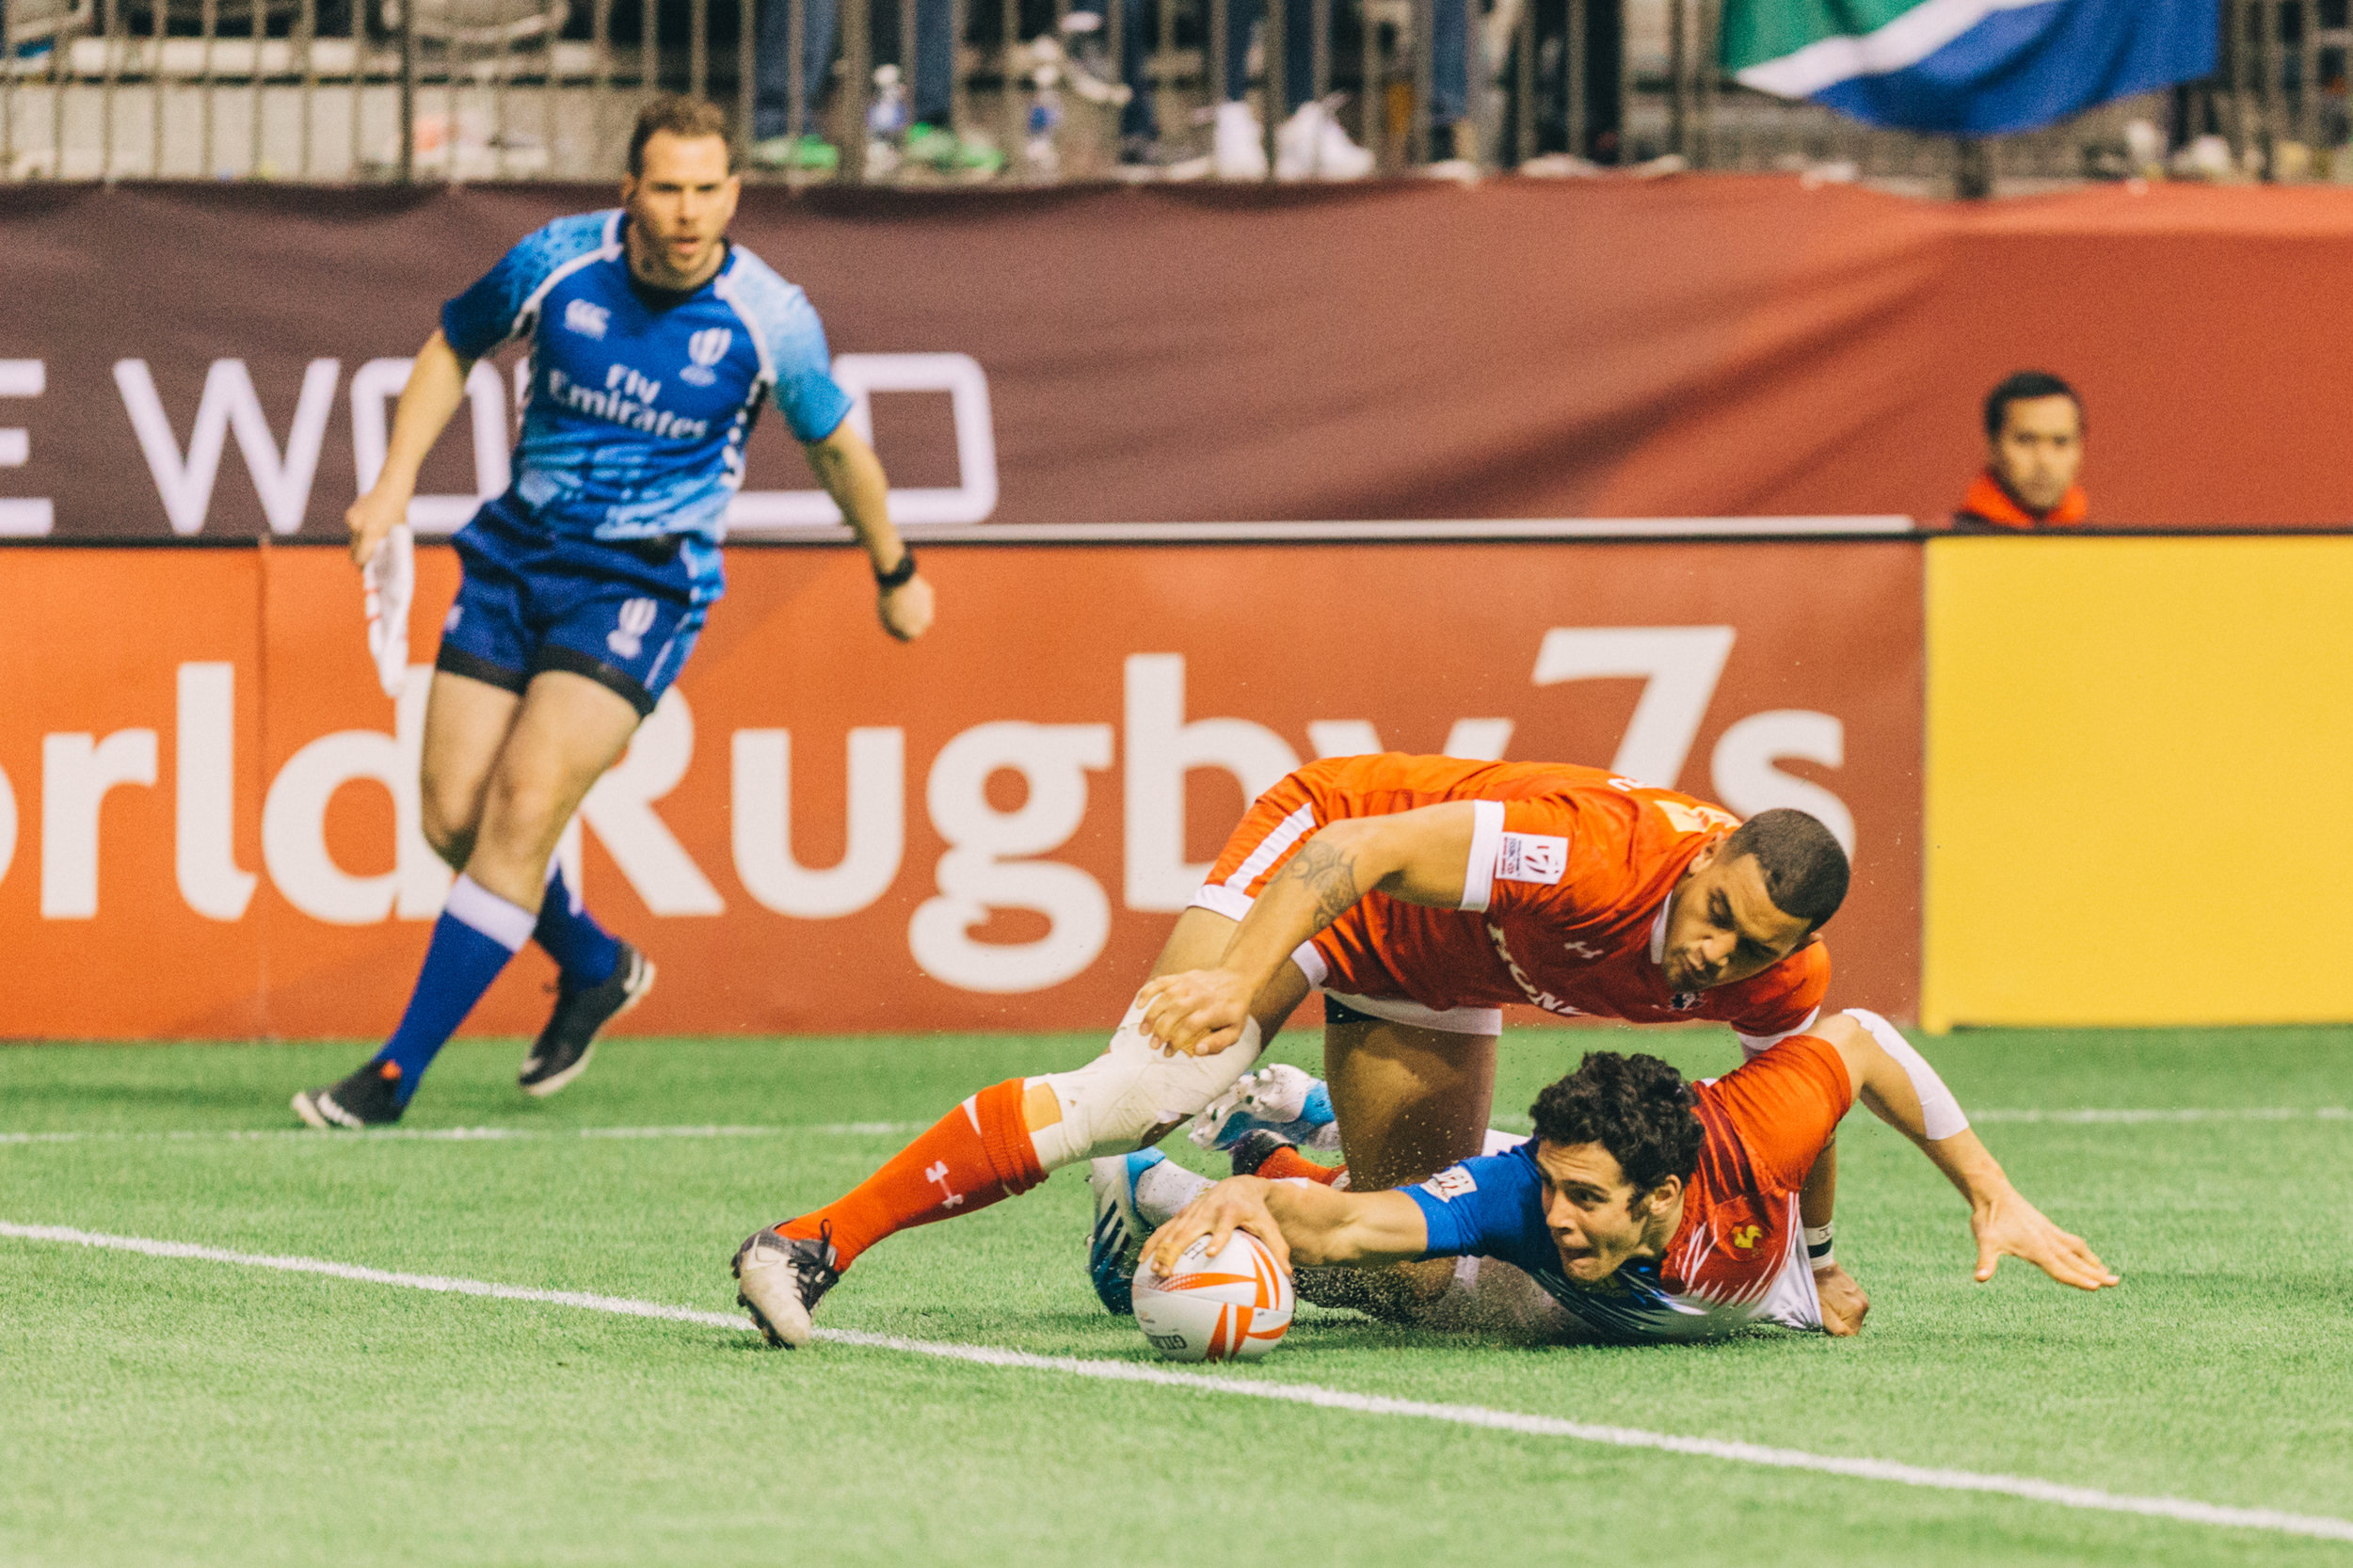 3.13.2016 - World Rugby HSBC Seven Series @ Vancouver, BC - Edited 2 (148 of 224).jpg